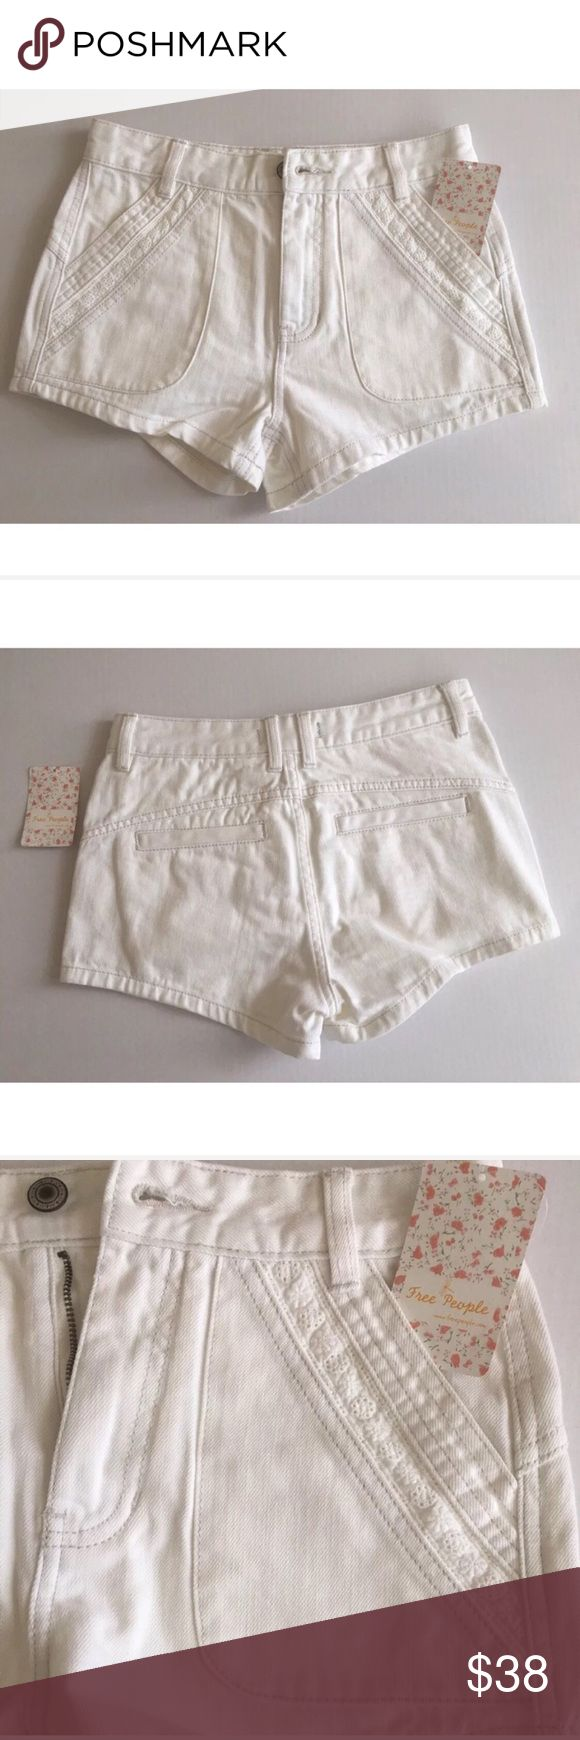 Free People white denim w/ white eyelet lace trim Free People white denim with white eyelet lace trim front jean short women's size 26 Brand: Free People Size: 26 Color: Optic Material: 100% cotton Care: Machine wash cold, tumble dry low. Condition: Brand New with tags Retail: $88 Product Details: FP sweet surrender women's short.  White lace insets both two front pockets.  Two welt back pockets.  Banded waist, button closure, zip fly, and belt loops. Made in China Approximate Measurements…